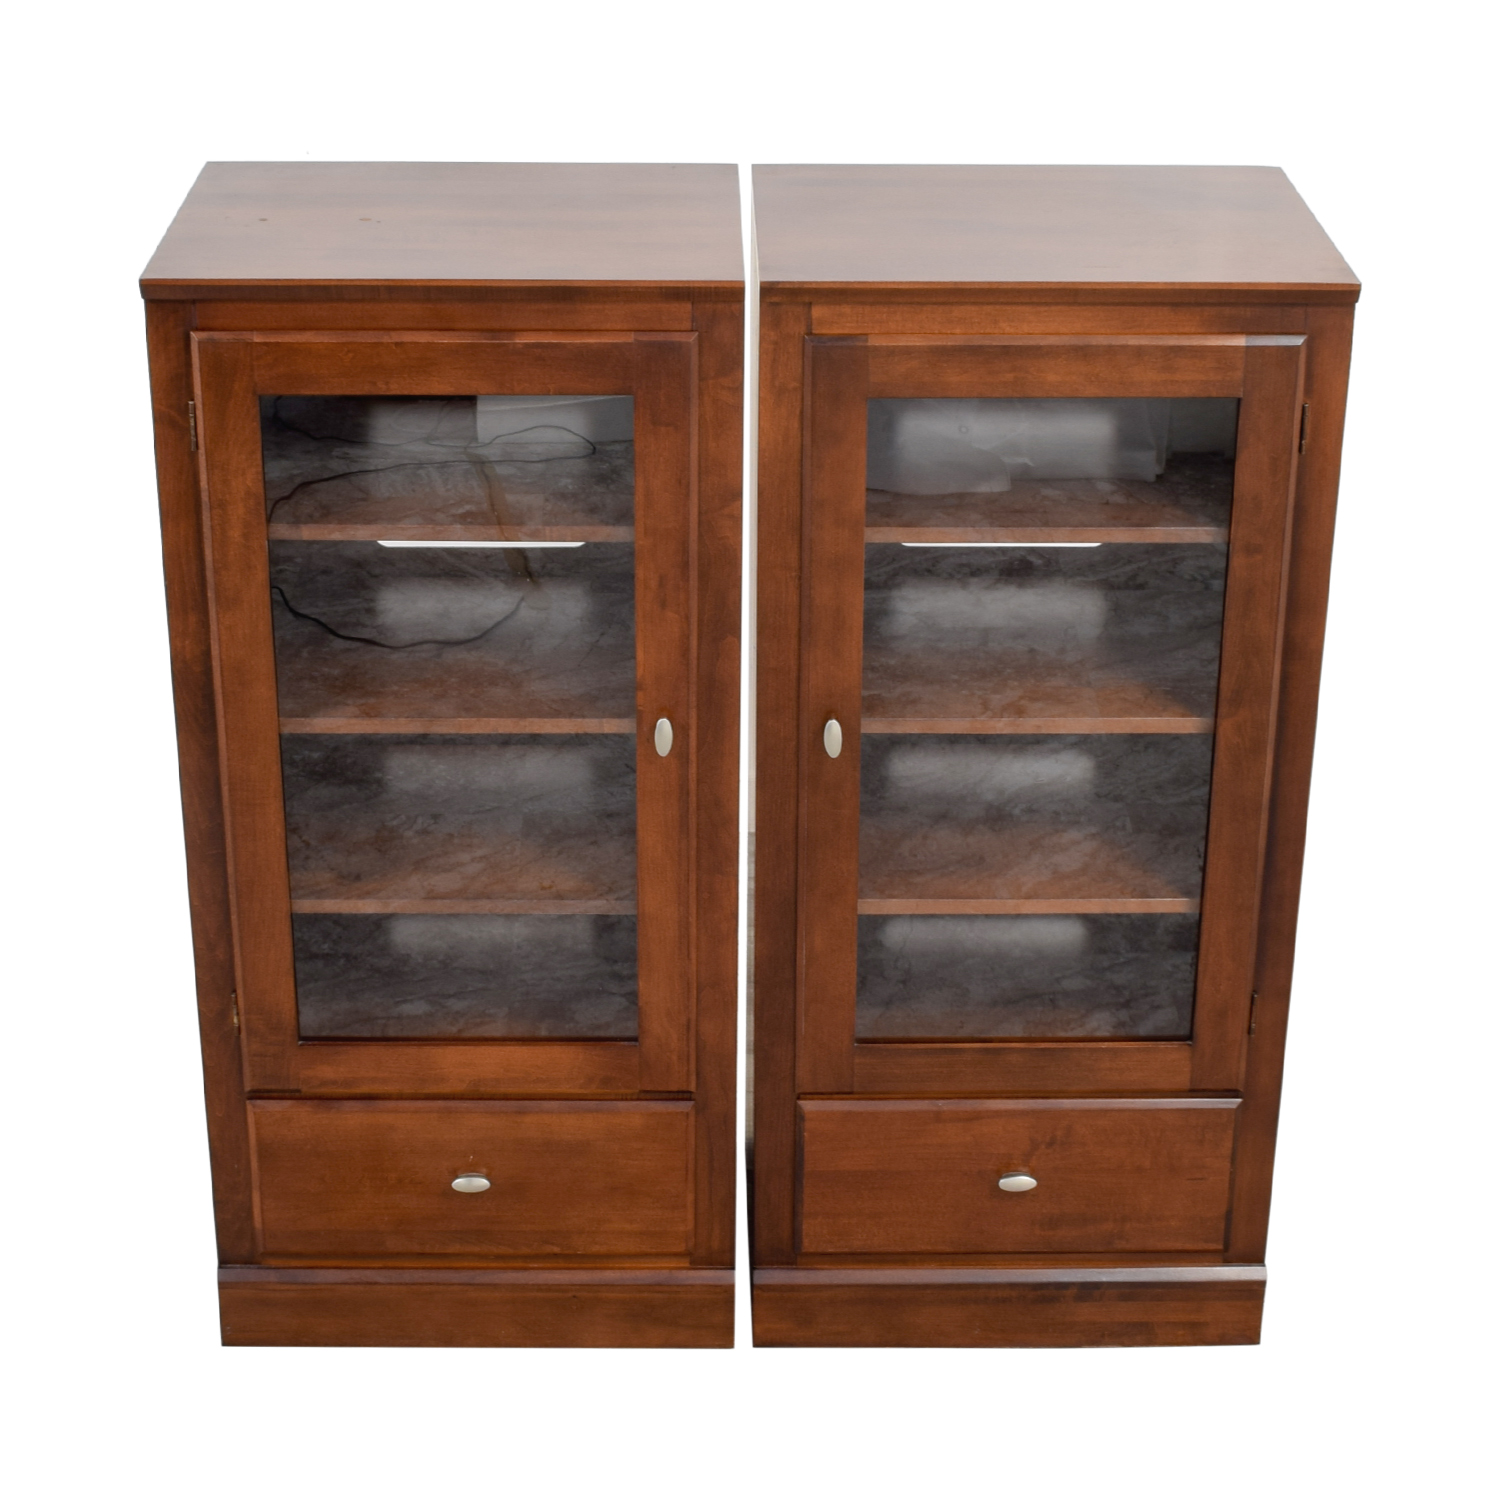 buy Ethan Allen Wood and Glass Side Hutches Ethan Allen Bookcases & Shelving